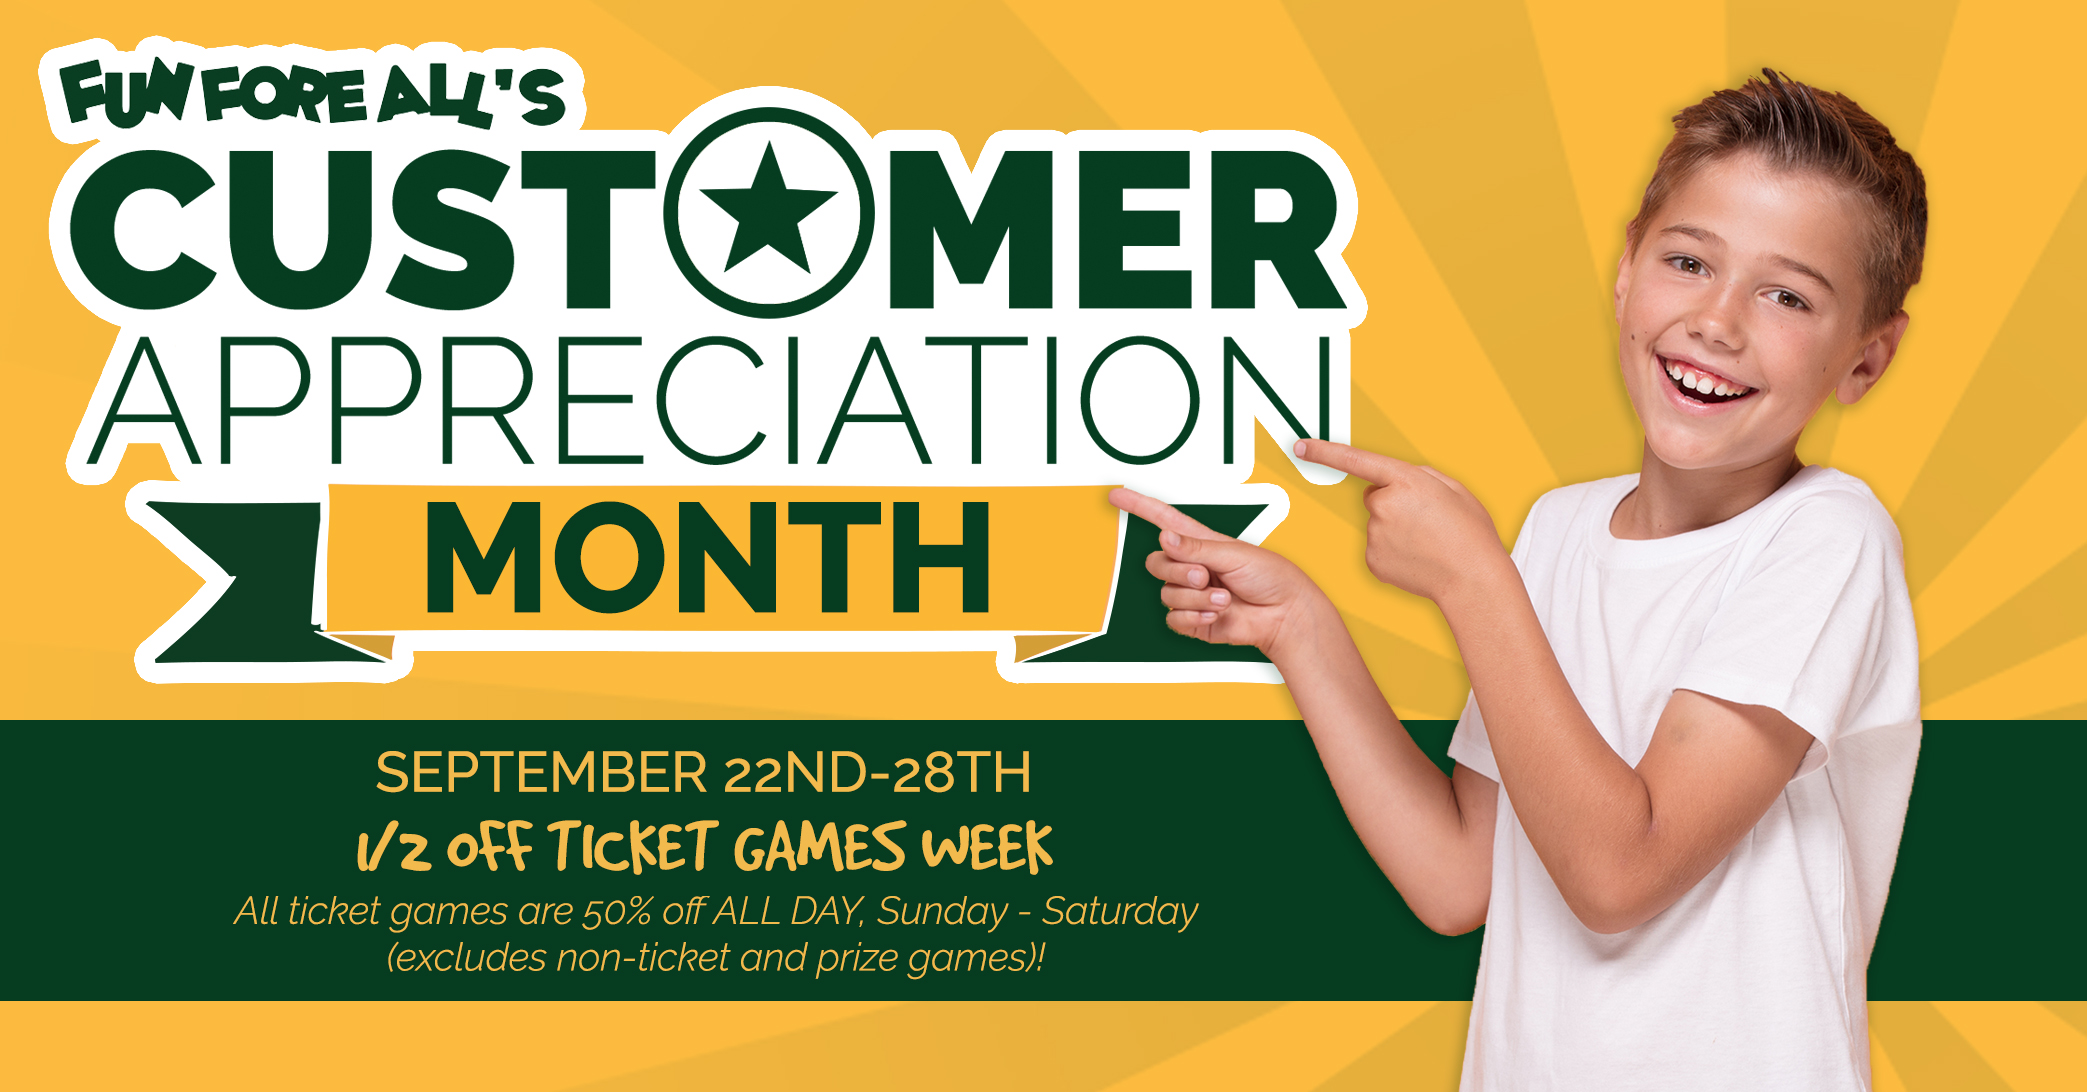 Facebook Invite (Customer Appreciation Month) Half Off Ticket Games Week 2019.jpg